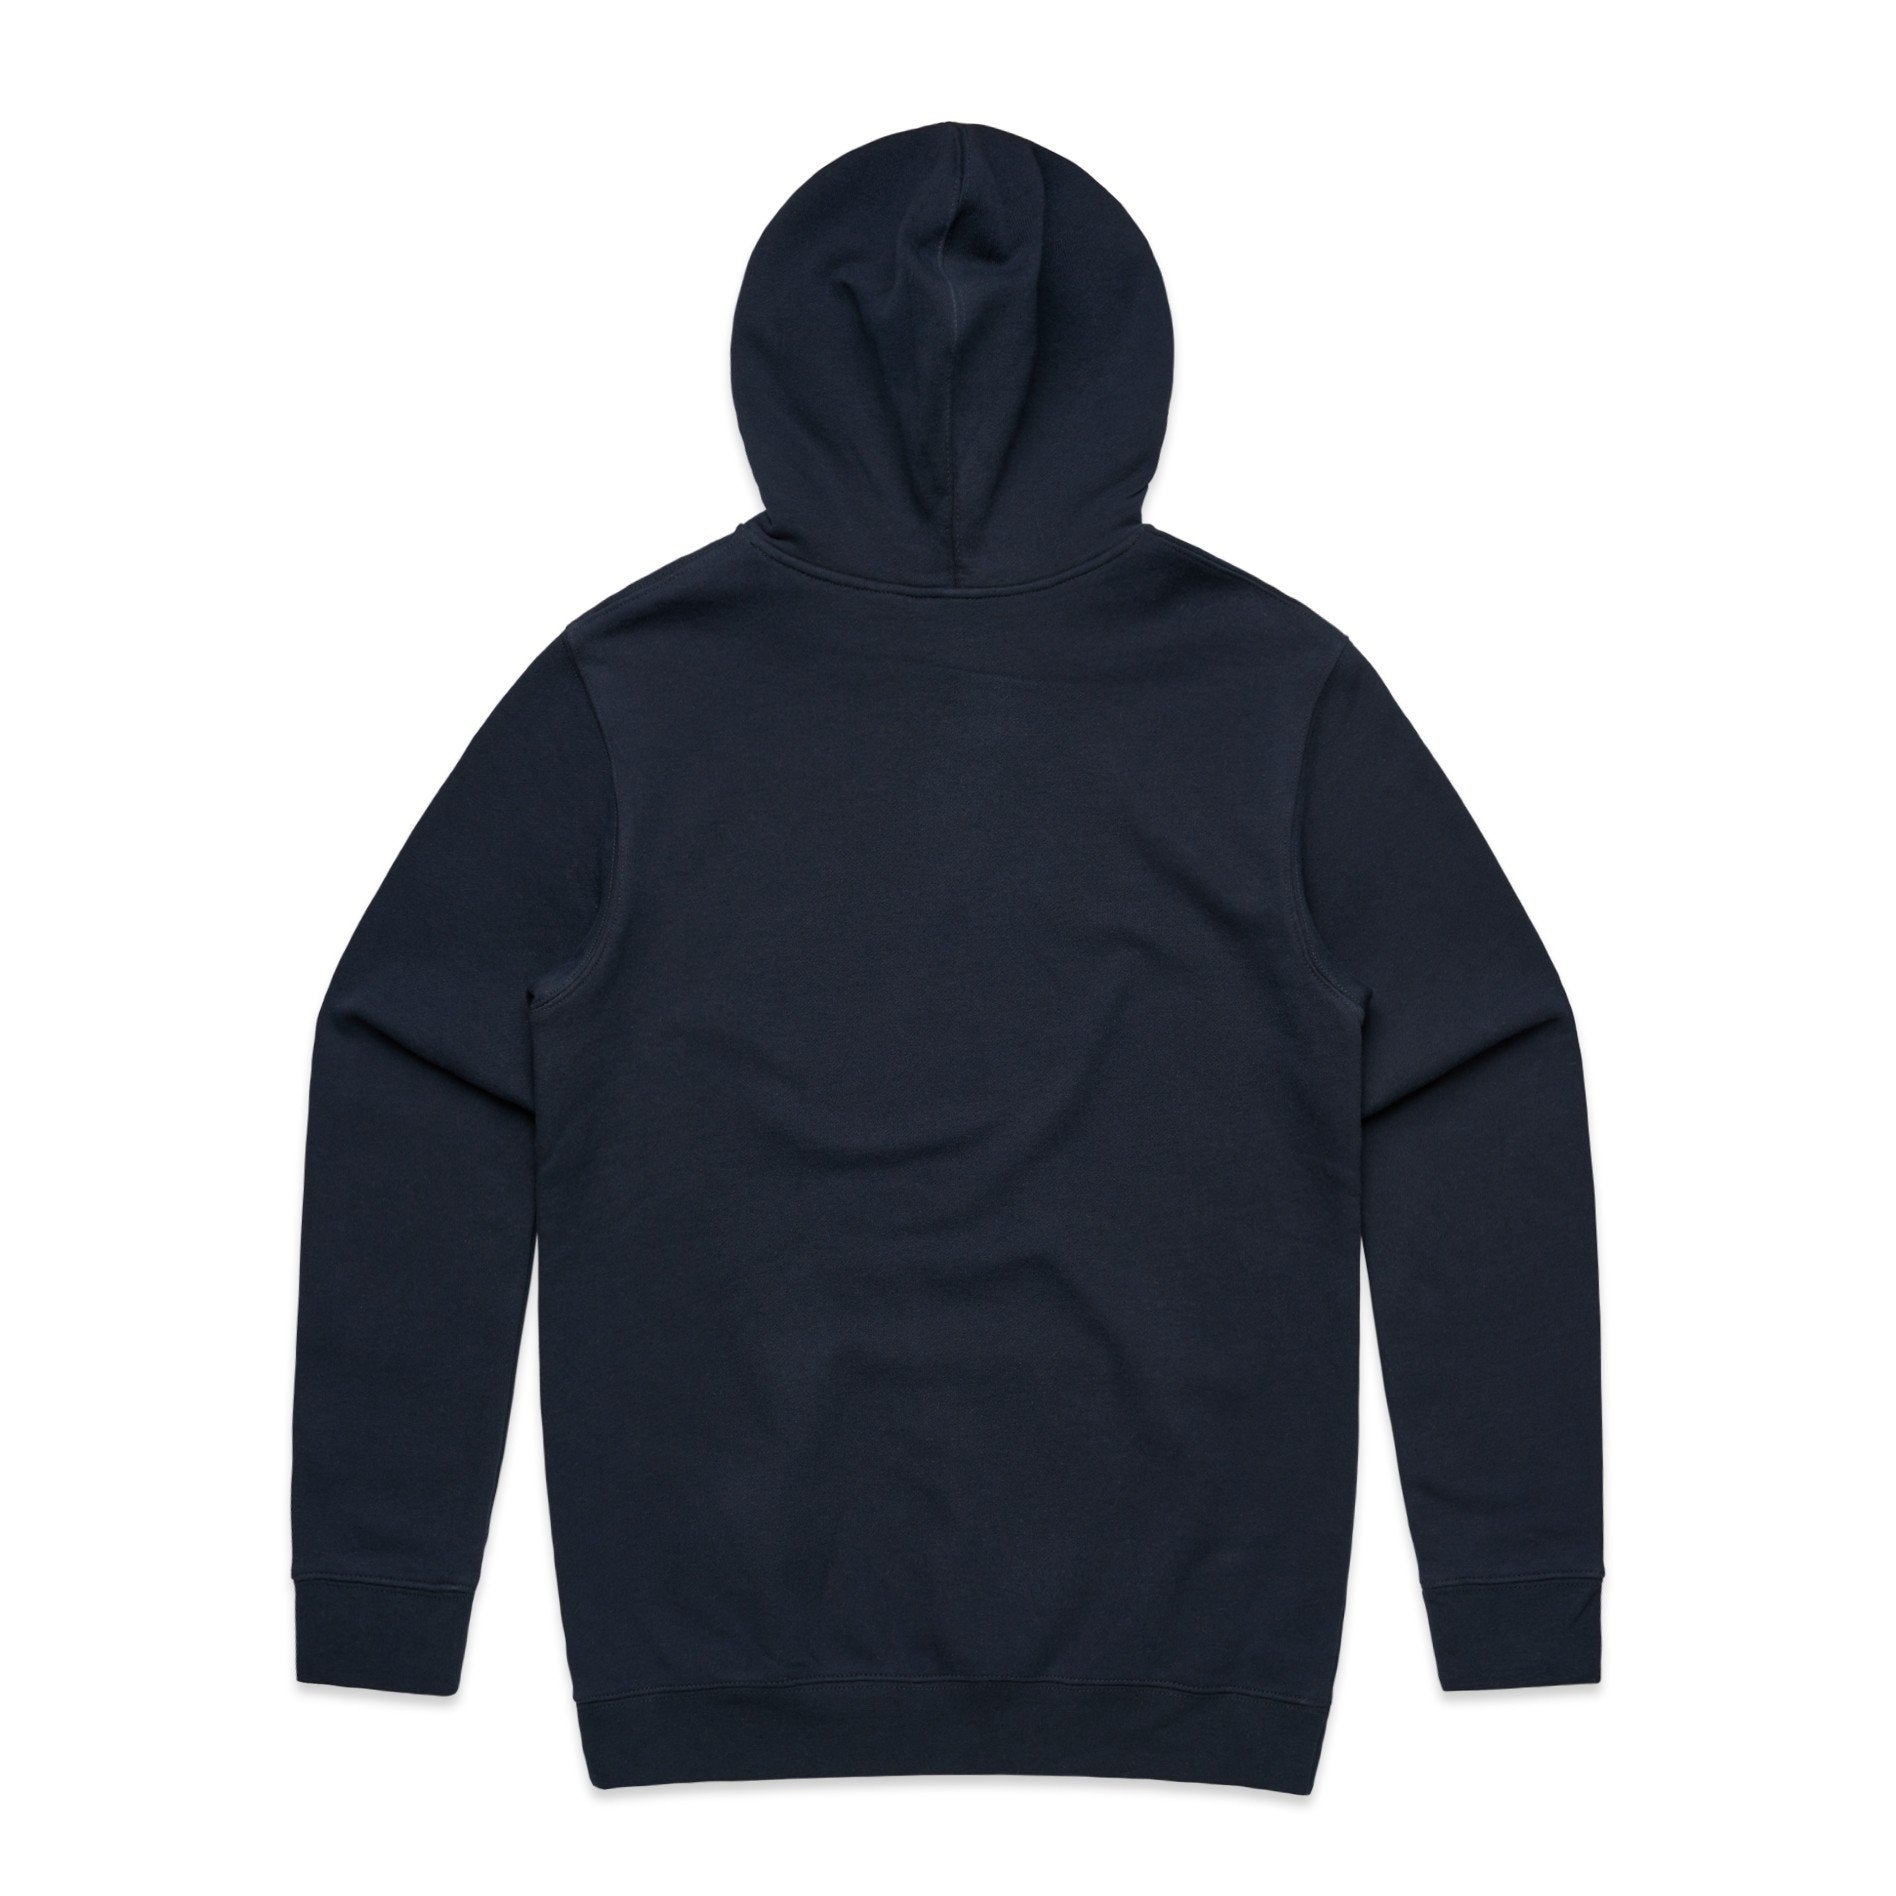 Navy Basic Hoodie with USA Flag